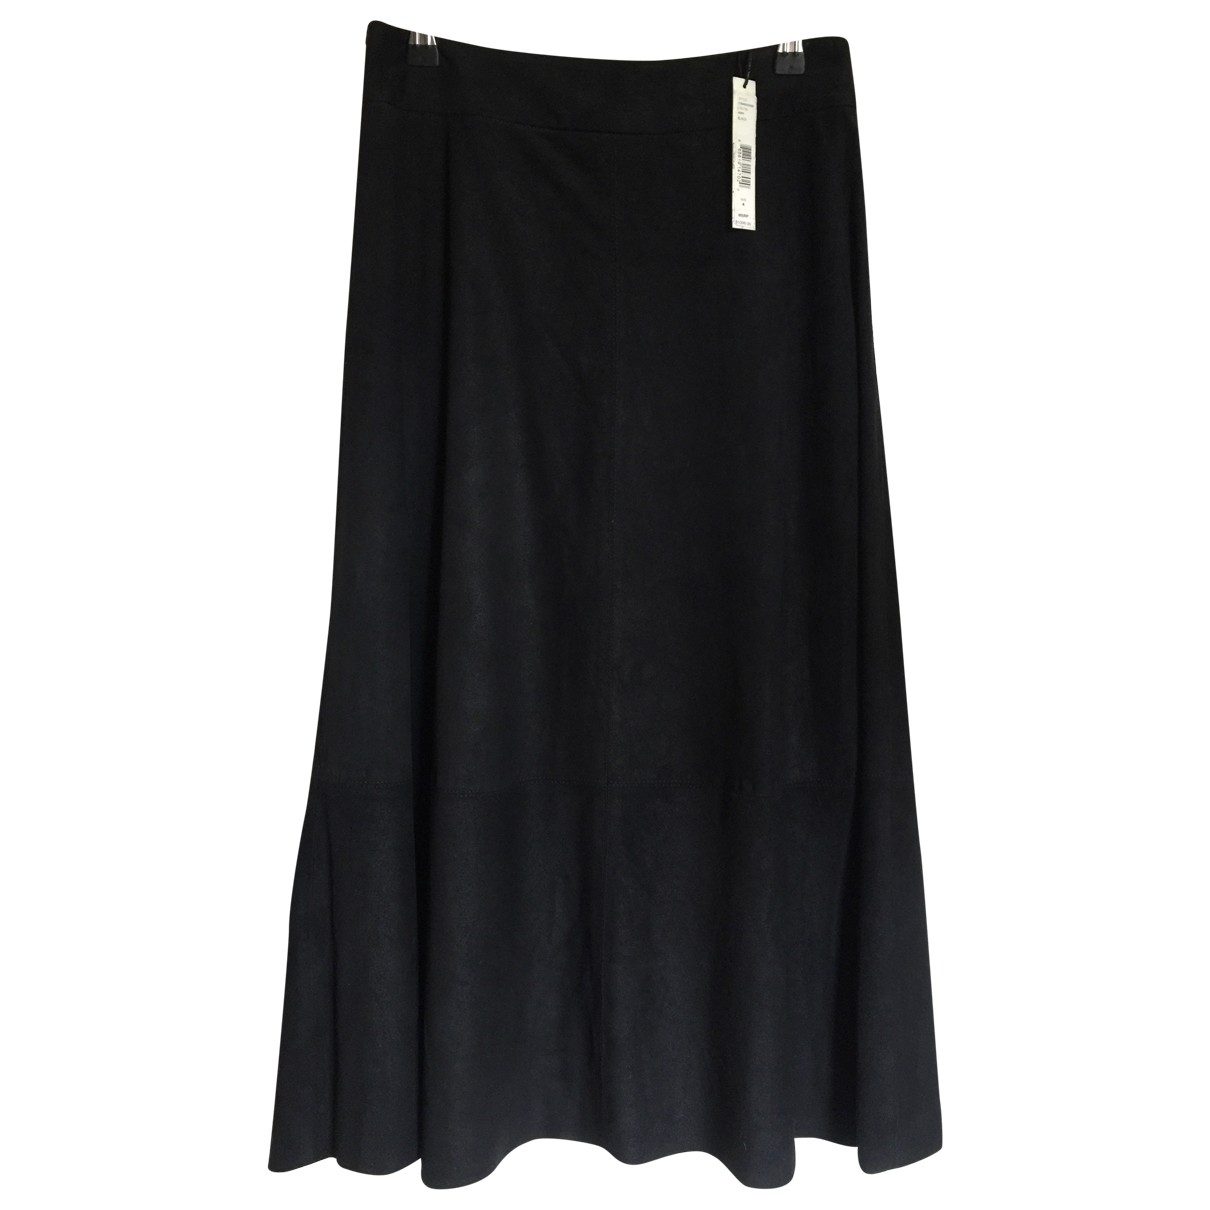 Alice & Olivia \N Black Suede skirt for Women 4 US